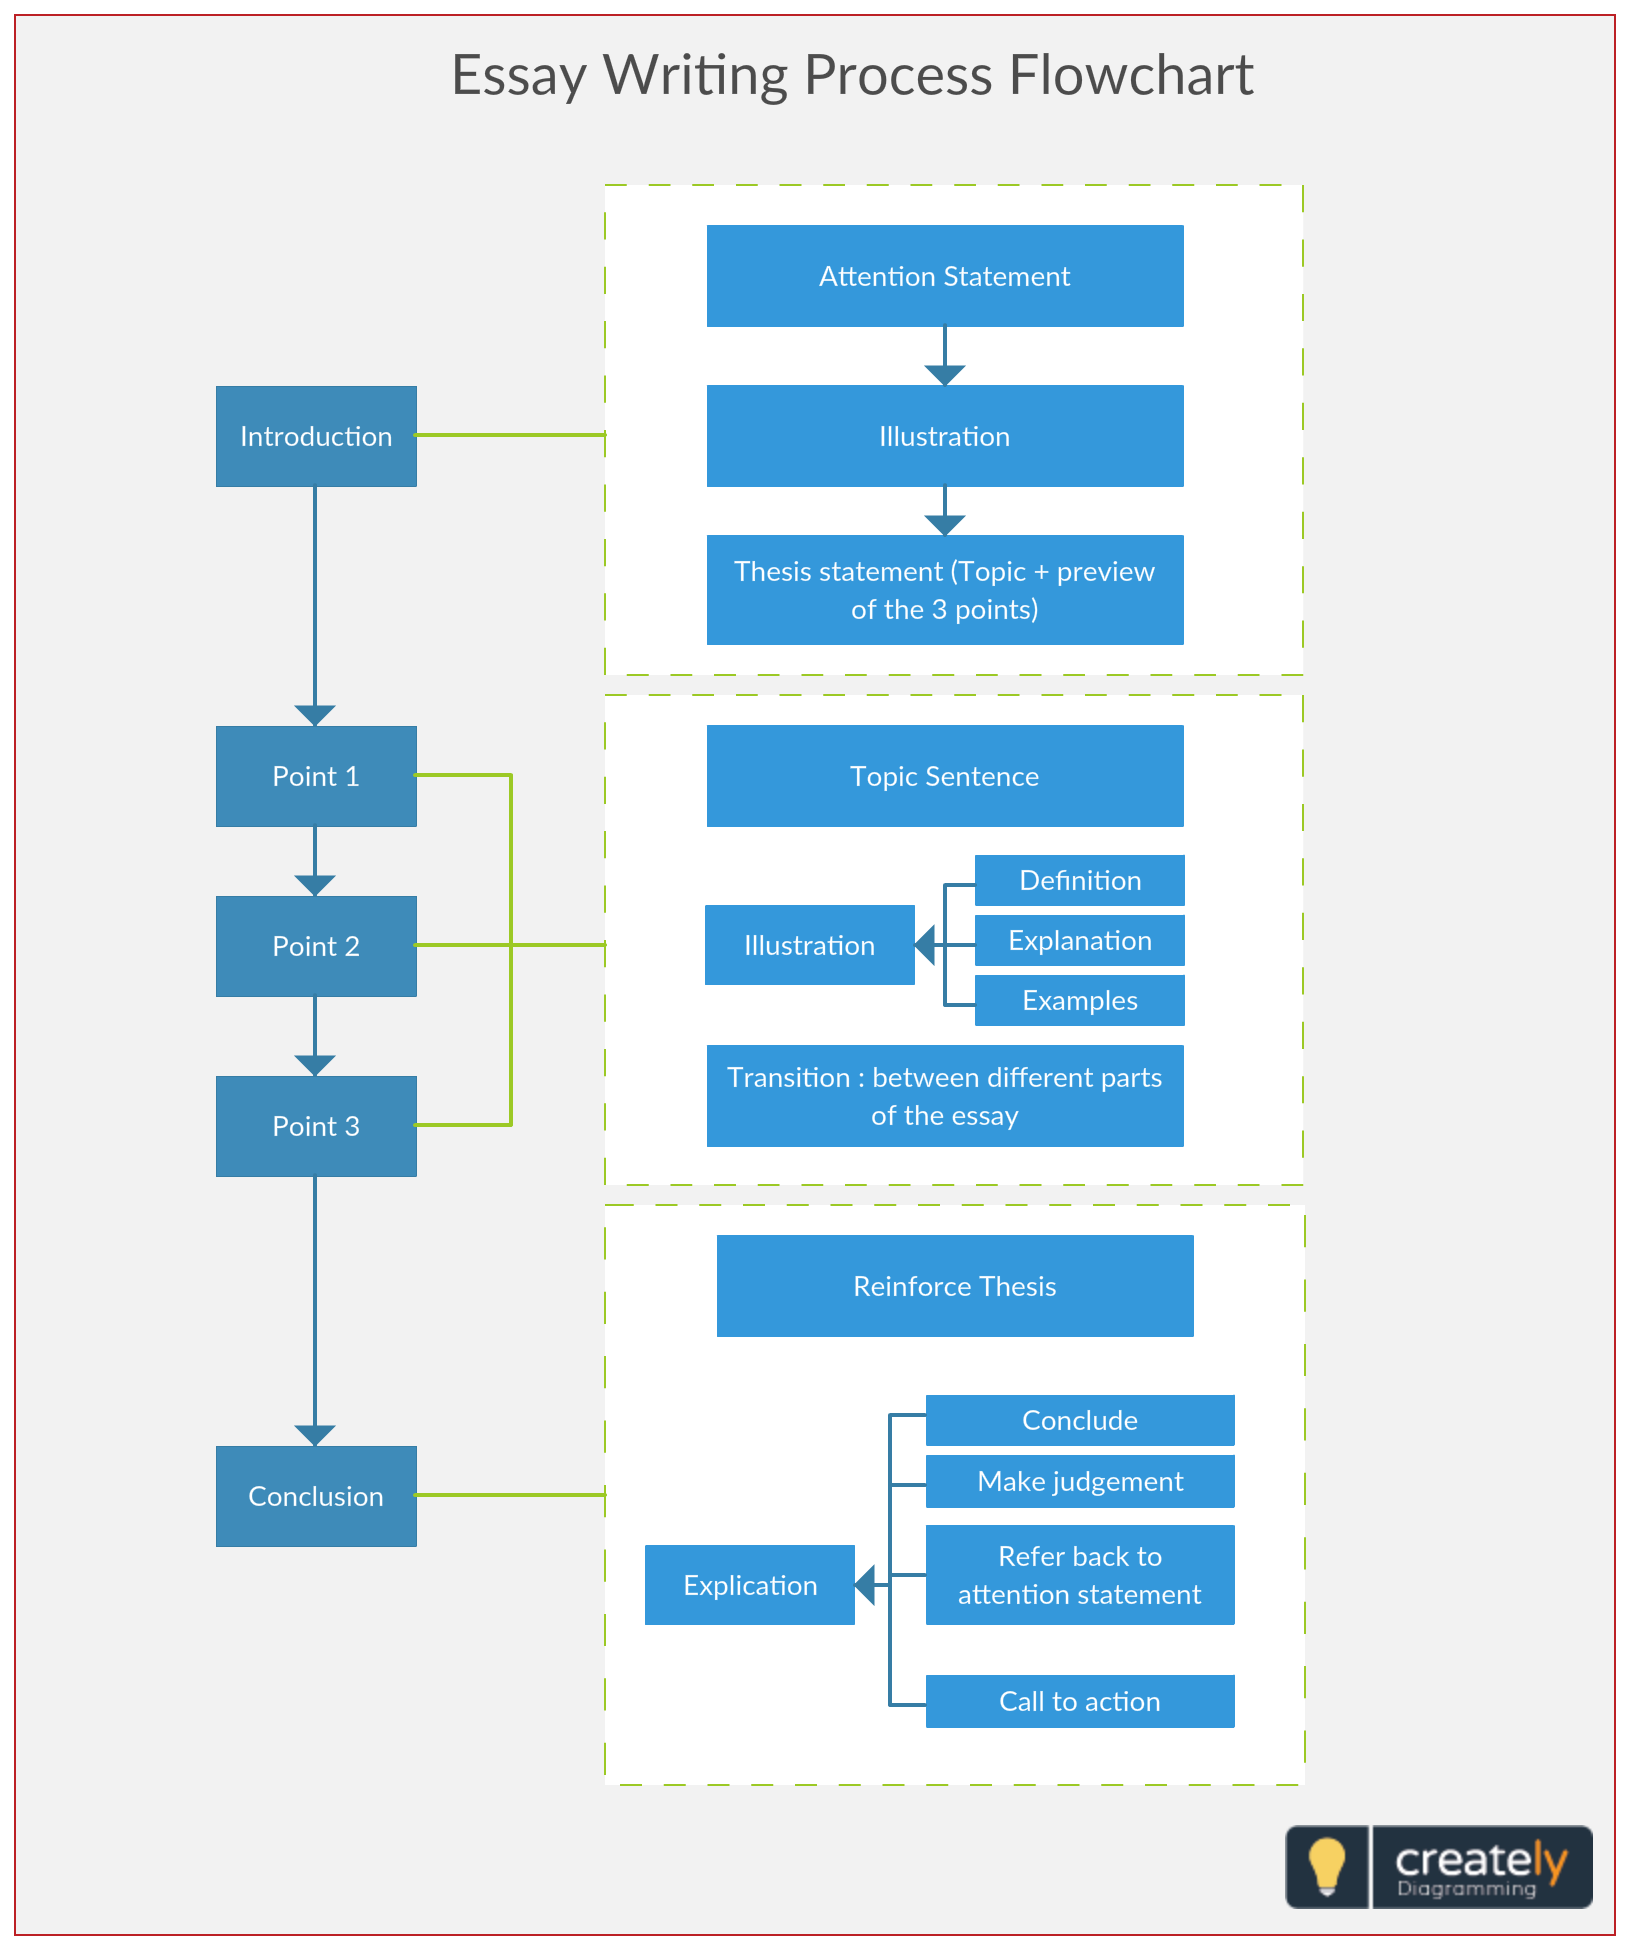 medium resolution of essay writing process flowchart the flowchart below shows the process involved in writing a formal